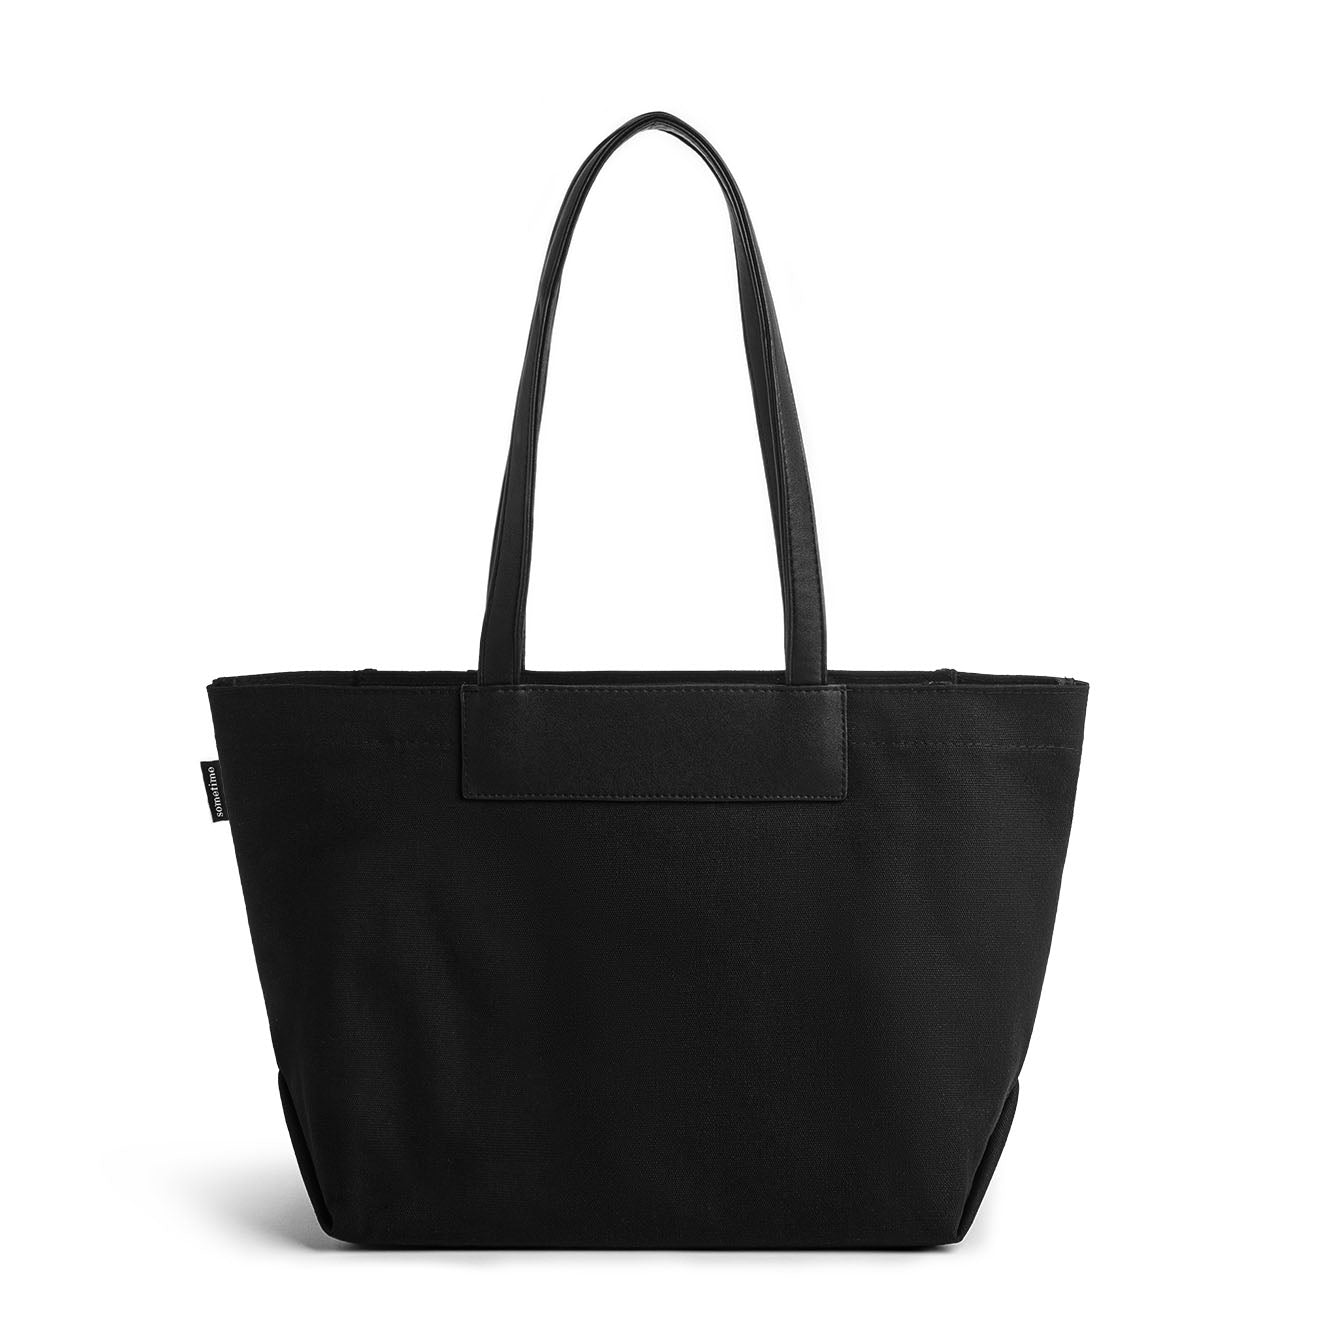 Furry Bag 36 (VV) - Black